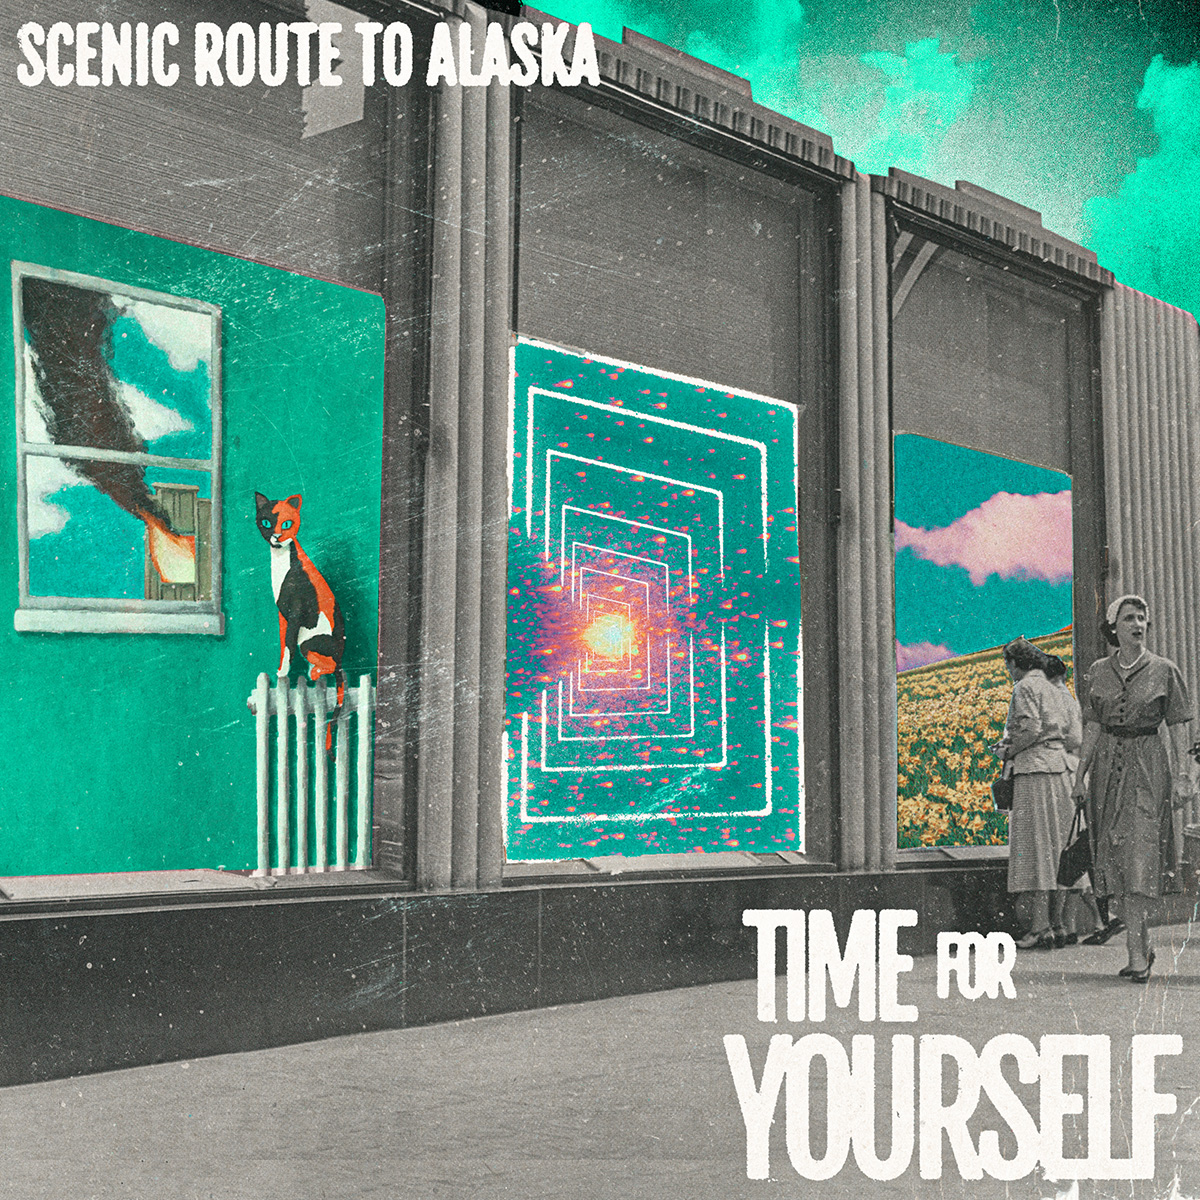 Scenic Route to Alaska - New Album Tim For Yourself. Cover Art by Sterling Larose